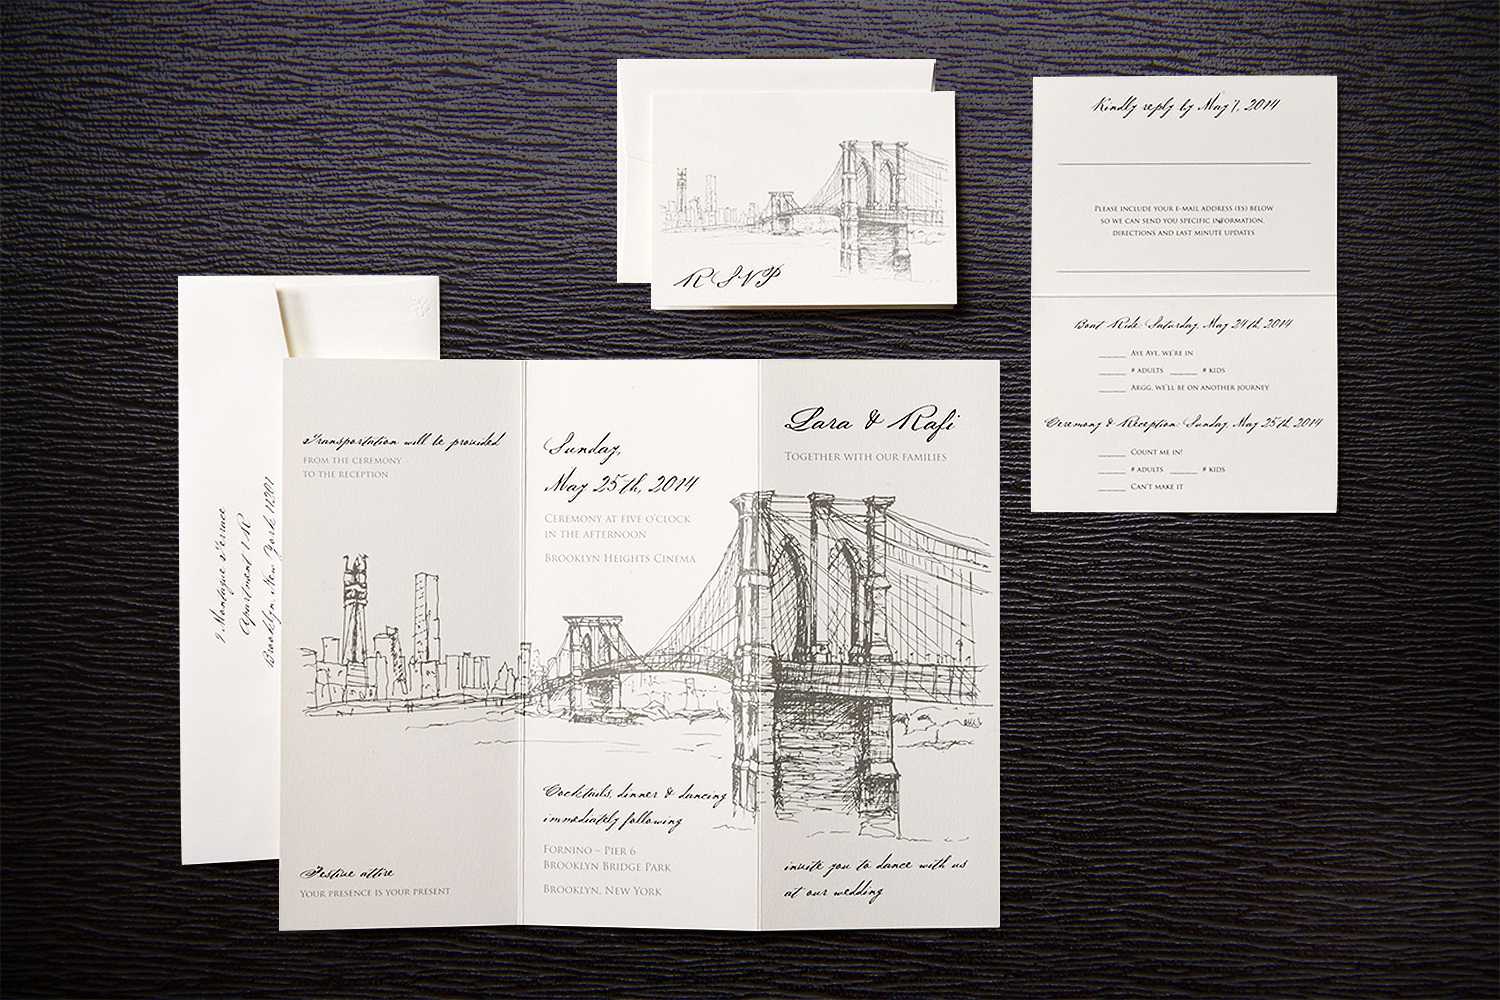 Brooklyn_Bridge_Wedding_1.jpg